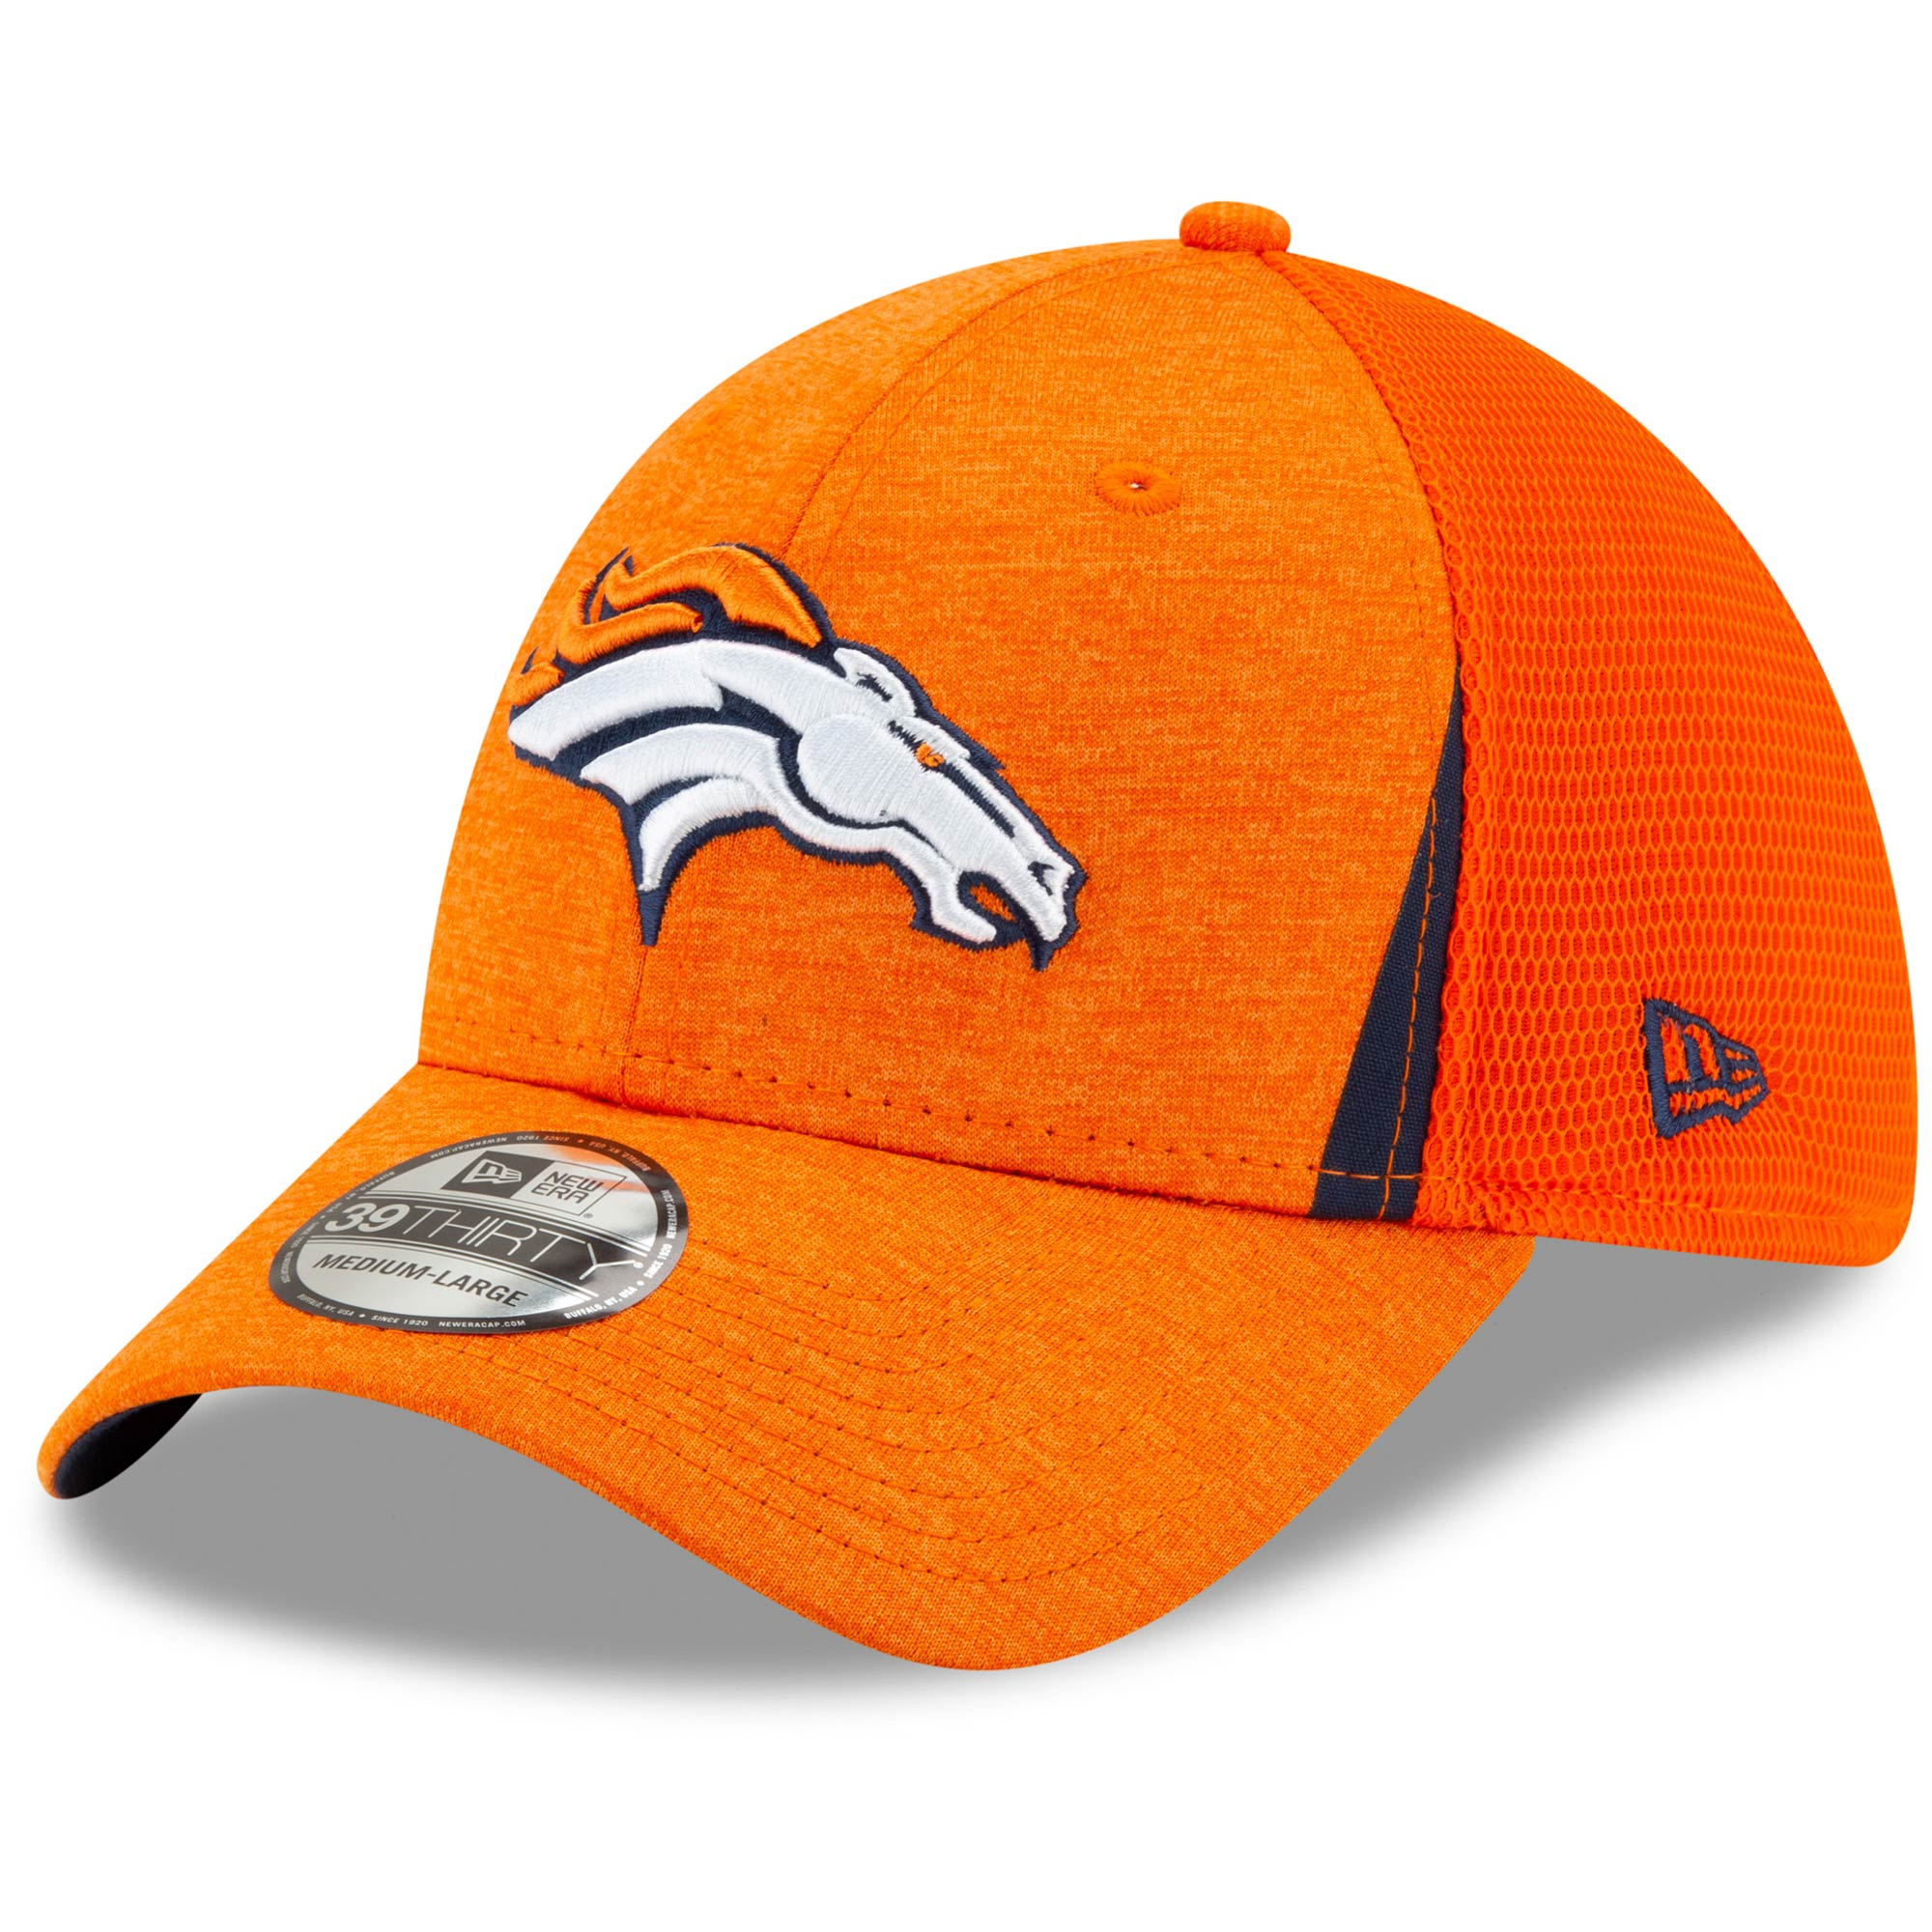 Denver Broncos New Era Slice Neo 39THIRTY Flex Hat - Orange